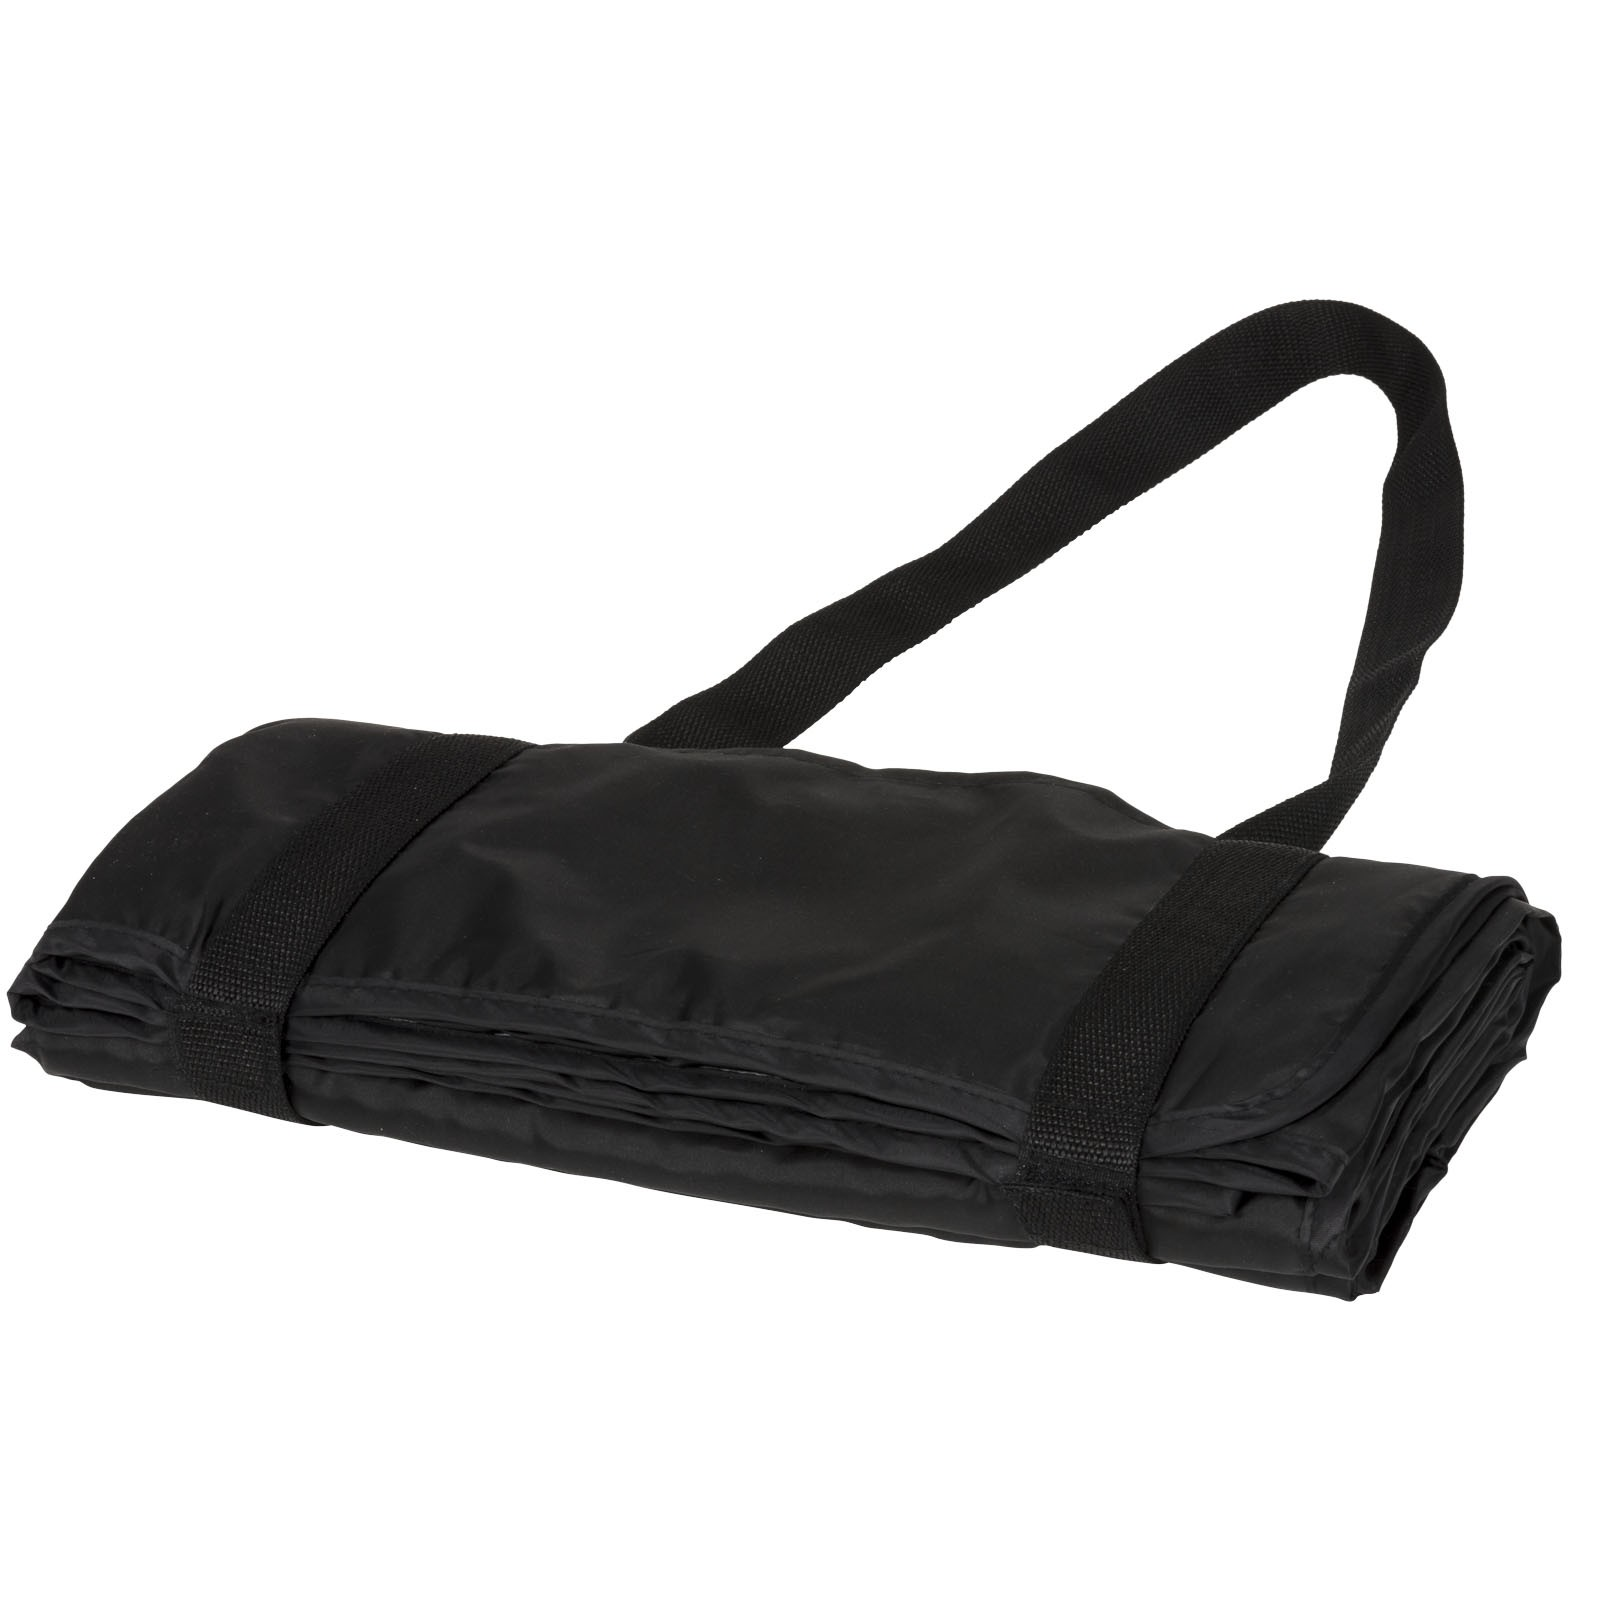 Roler picnic plaid with carrying strap - Solid Black